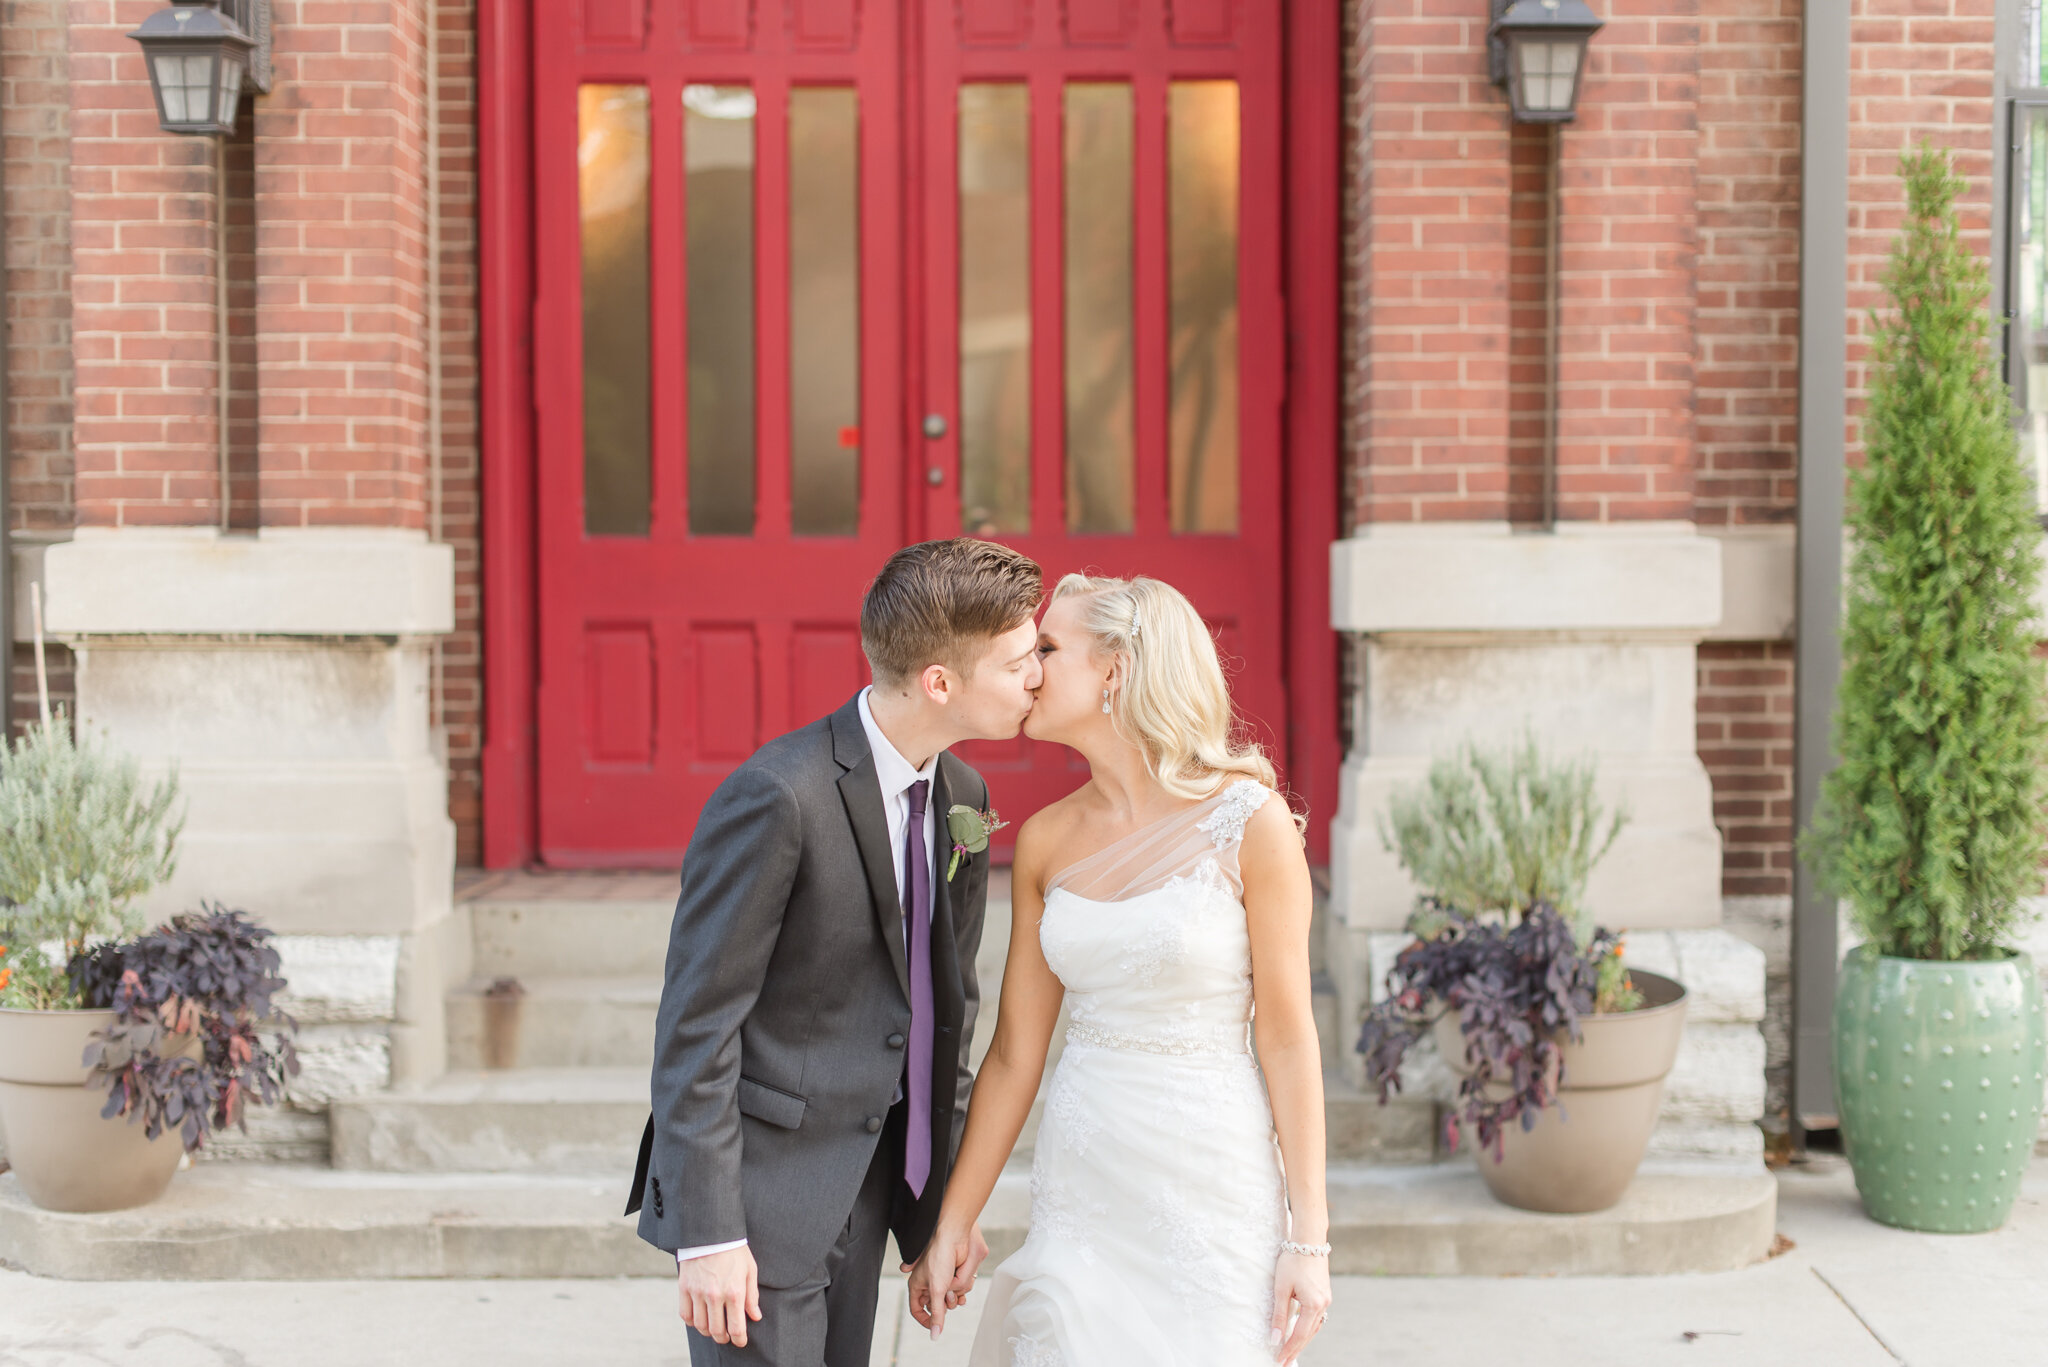 Downtown Indianapolis Wedding at Cyrus Place8363.jpg